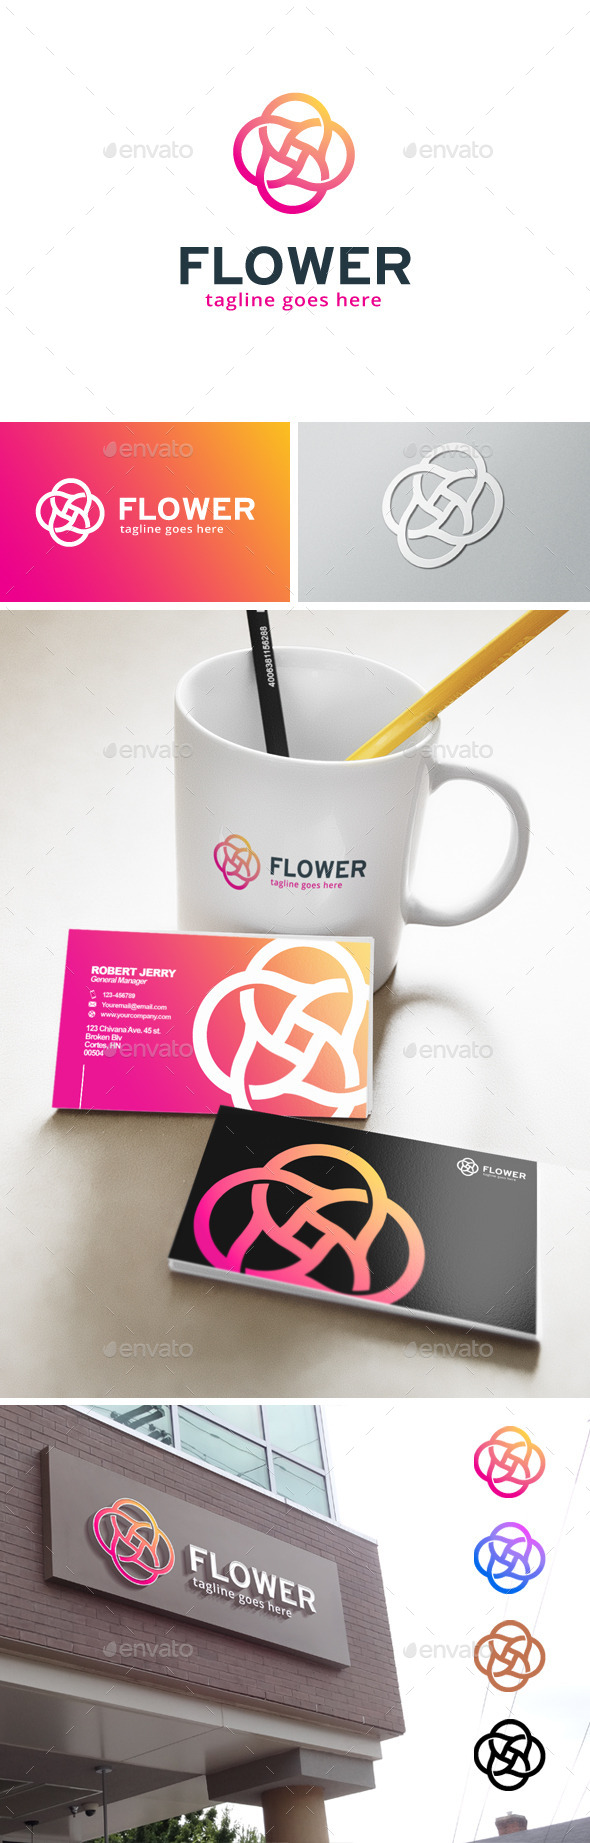 Flower Circle Logo - Abstract Logo Templates